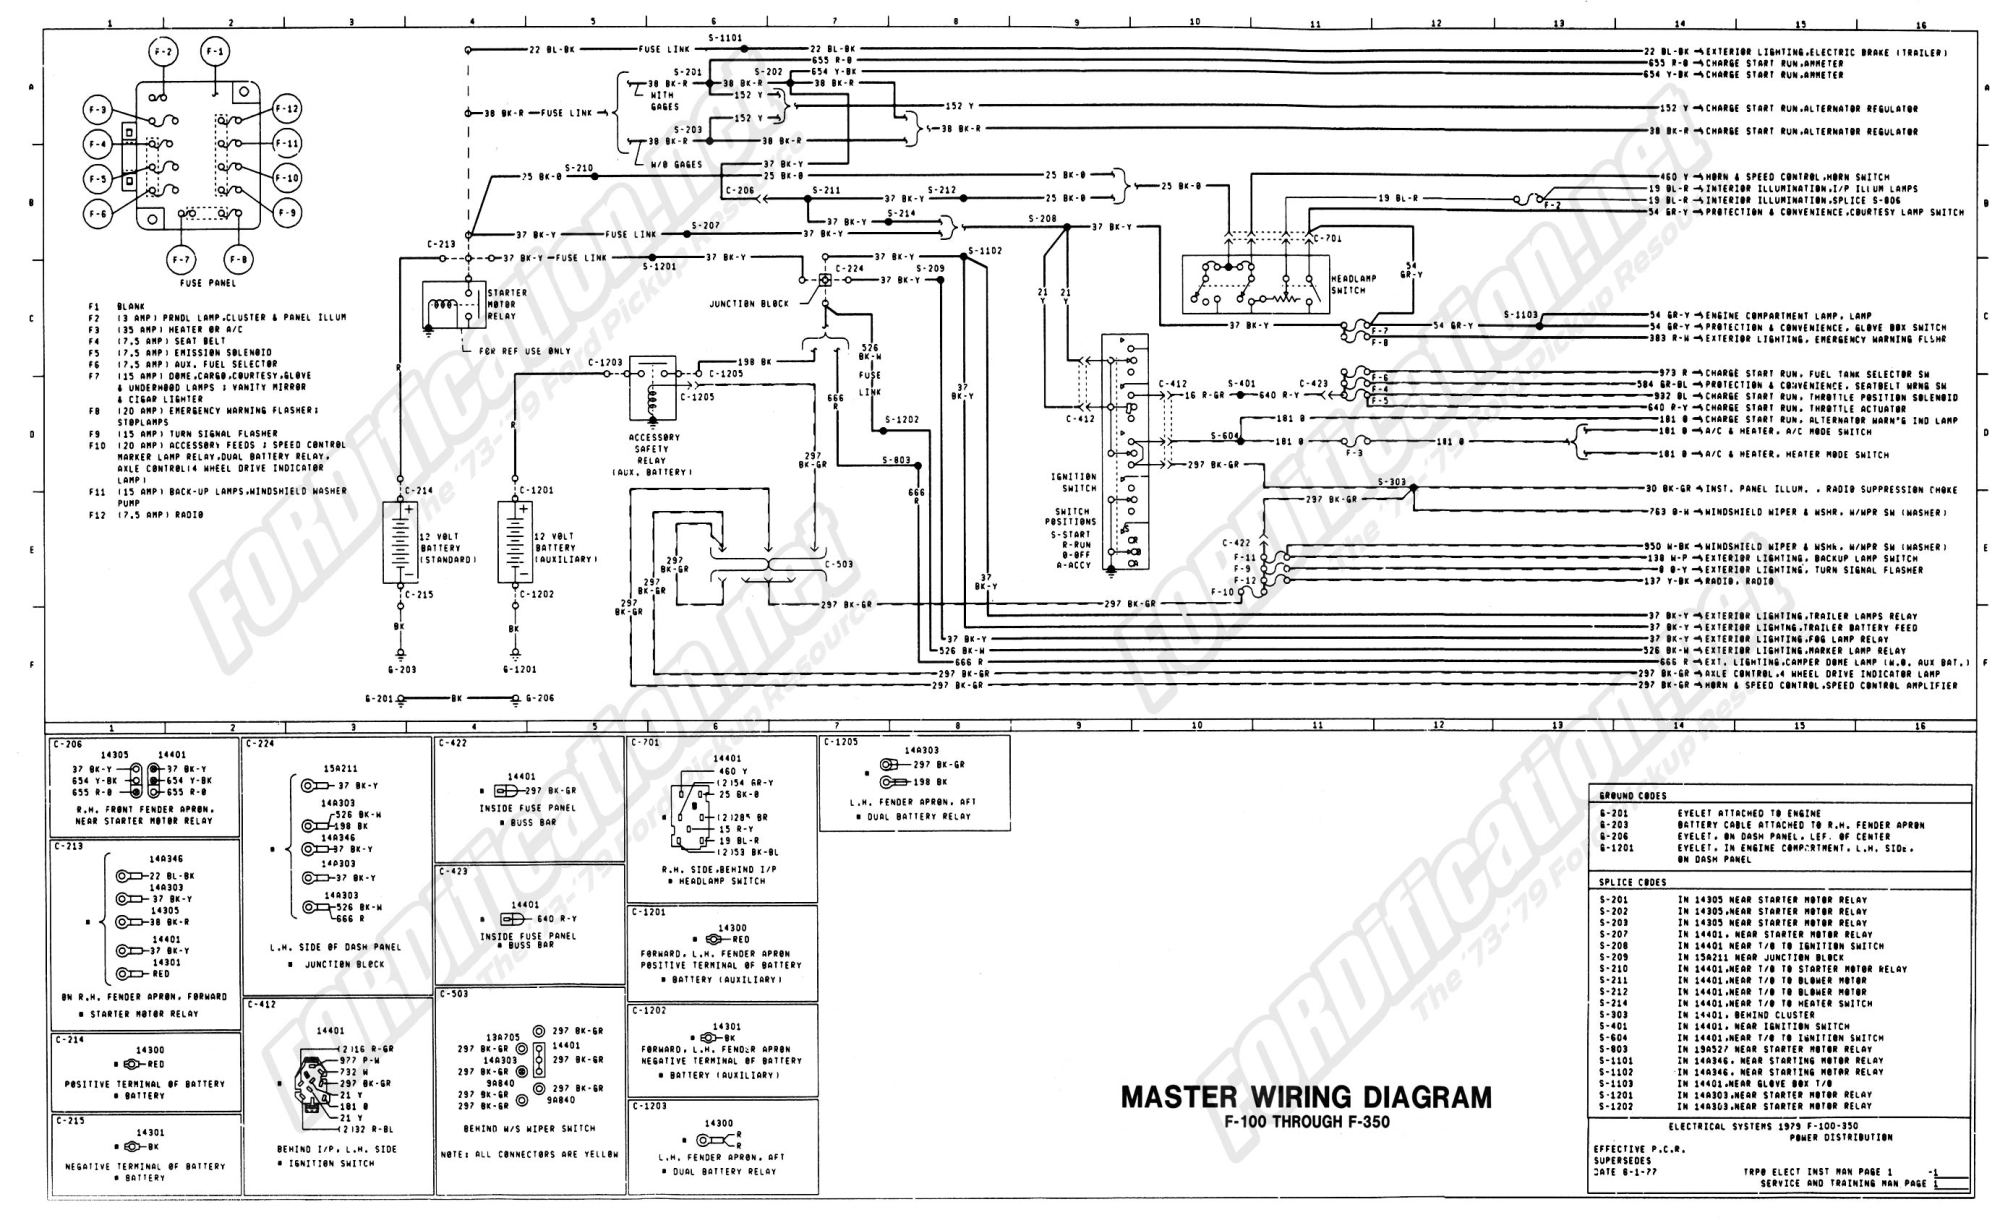 hight resolution of 1973 1979 ford truck wiring diagrams schematics fordification net 1990 bronco wiring diagram 1977 bronco wiring diagram